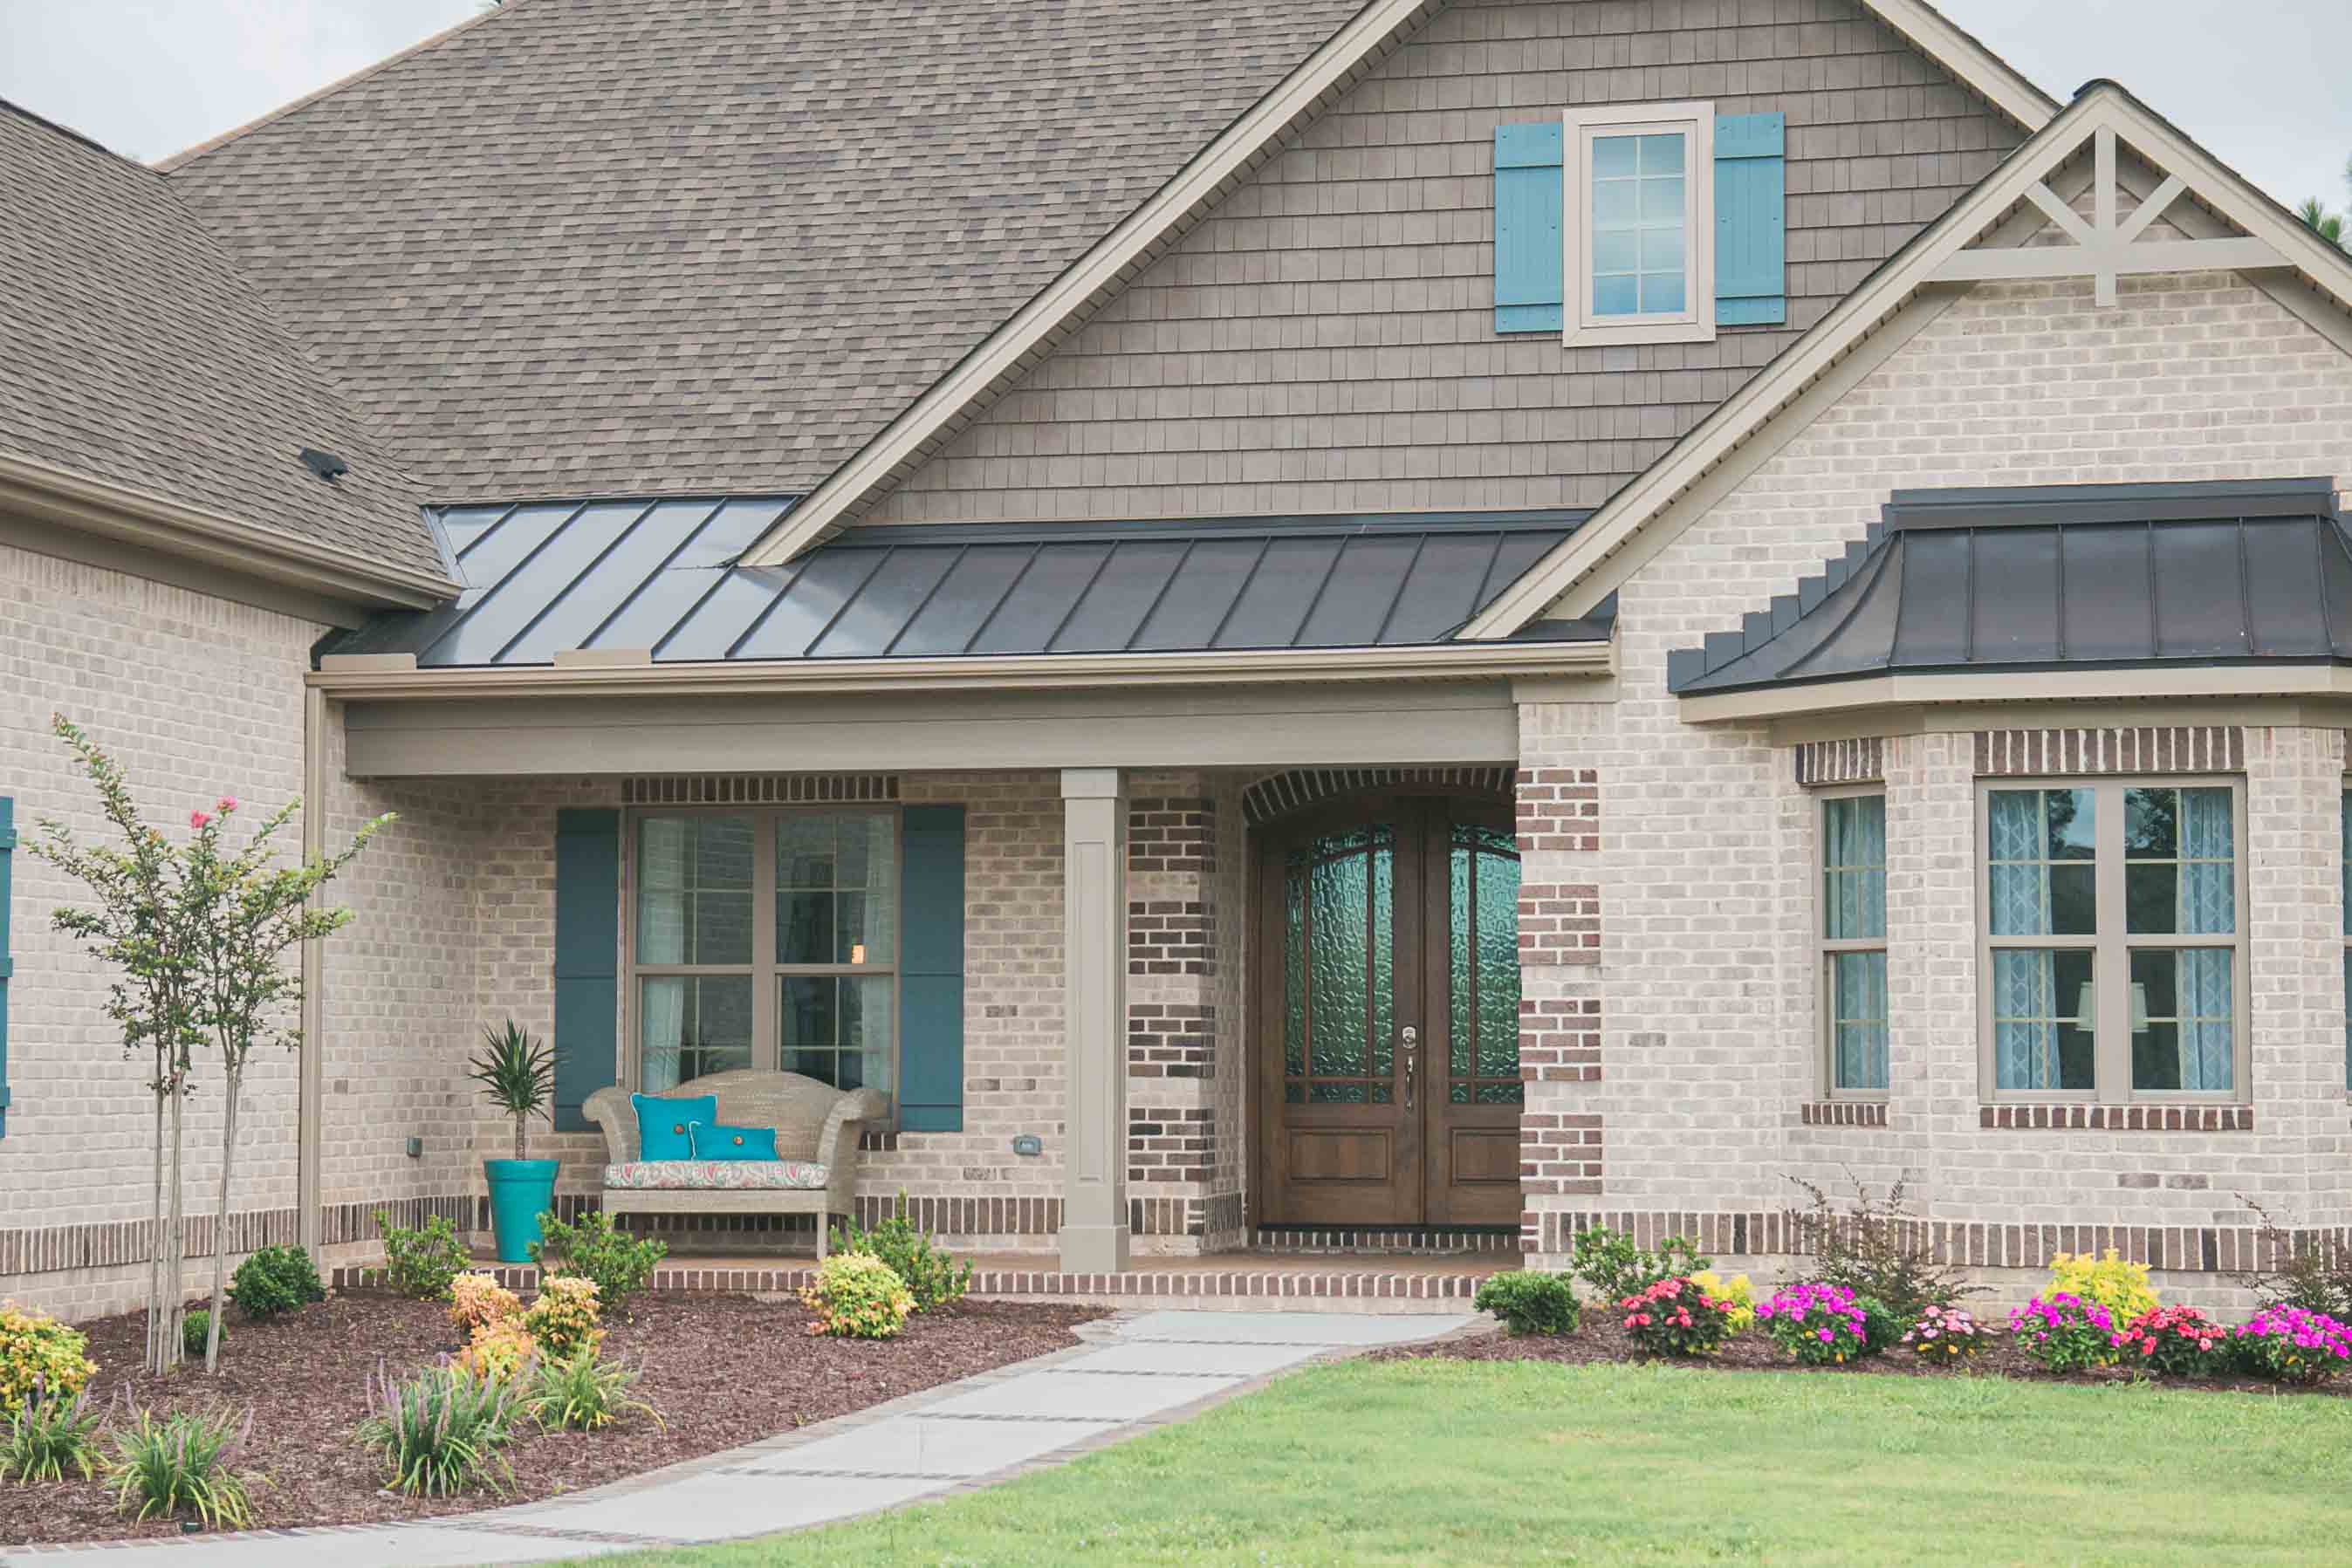 The Summerlyn by Liberty Homes